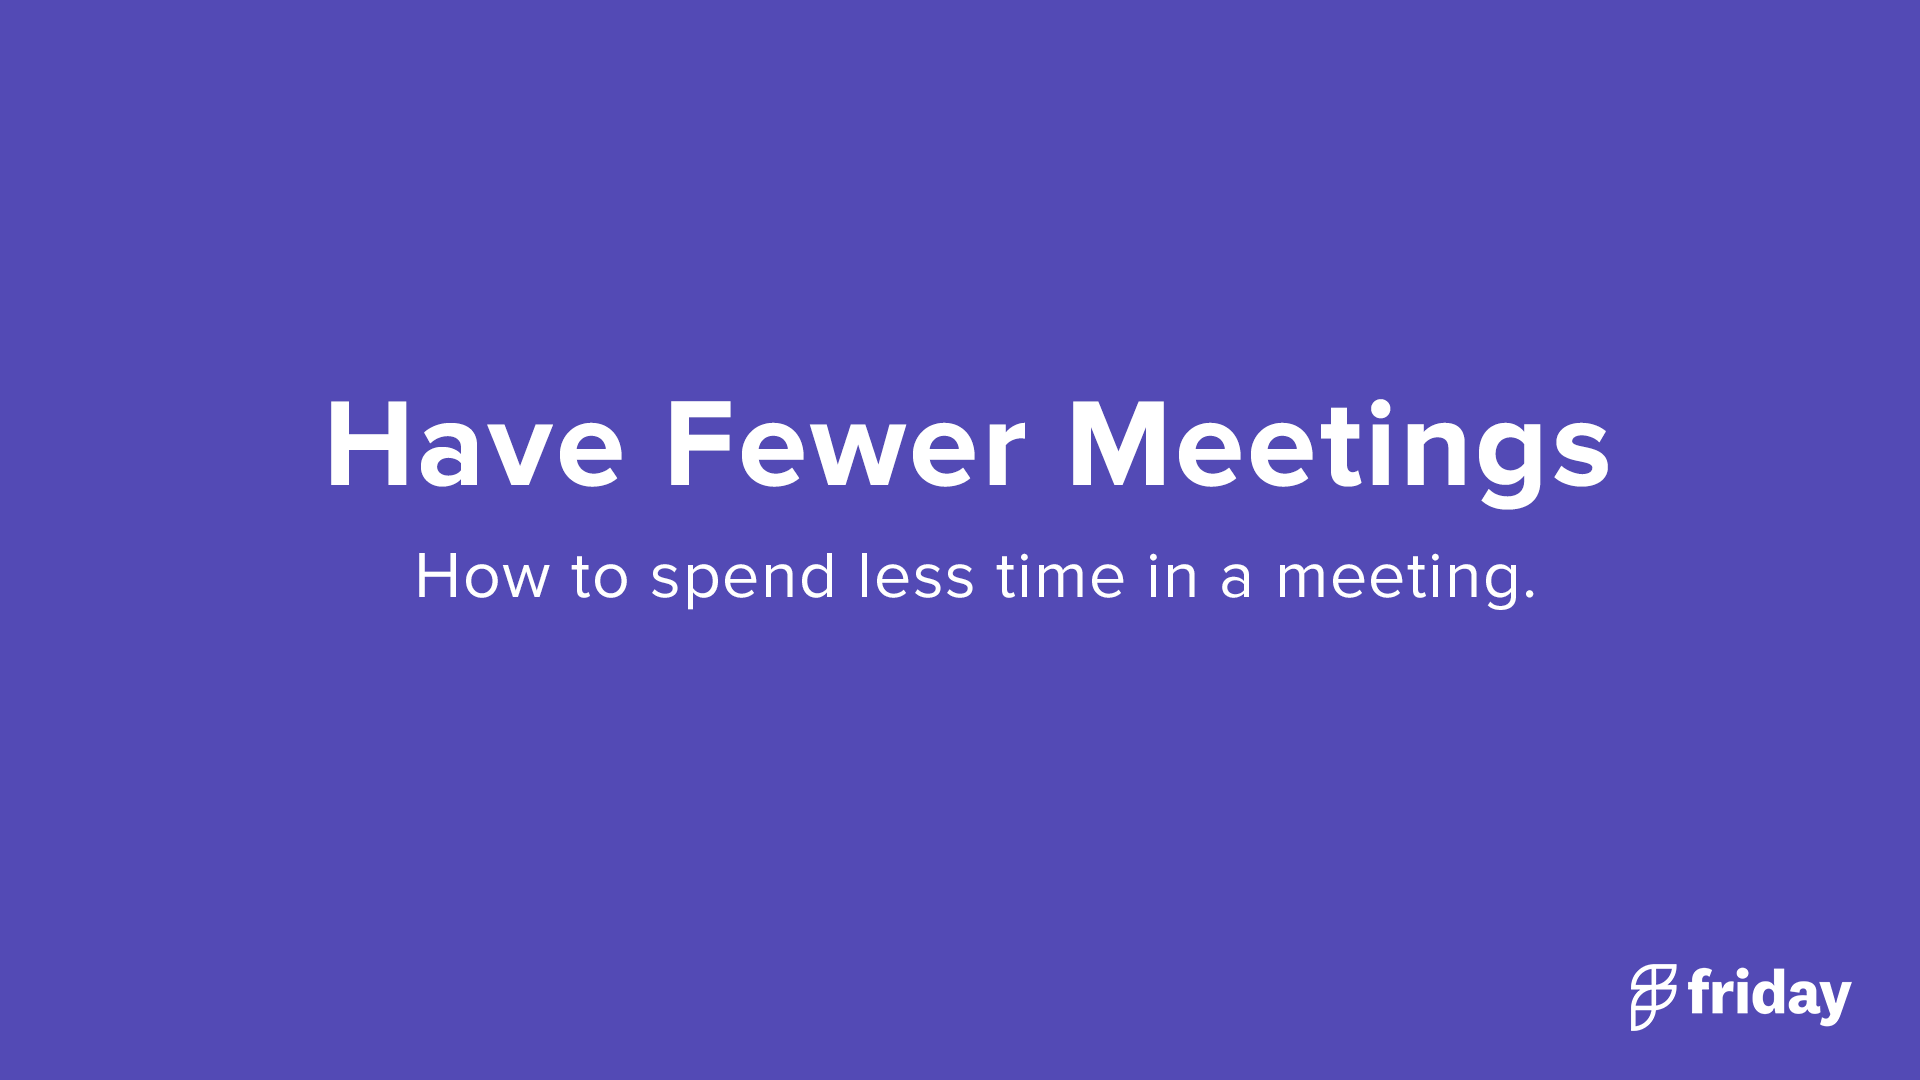 Spend less time in meetings